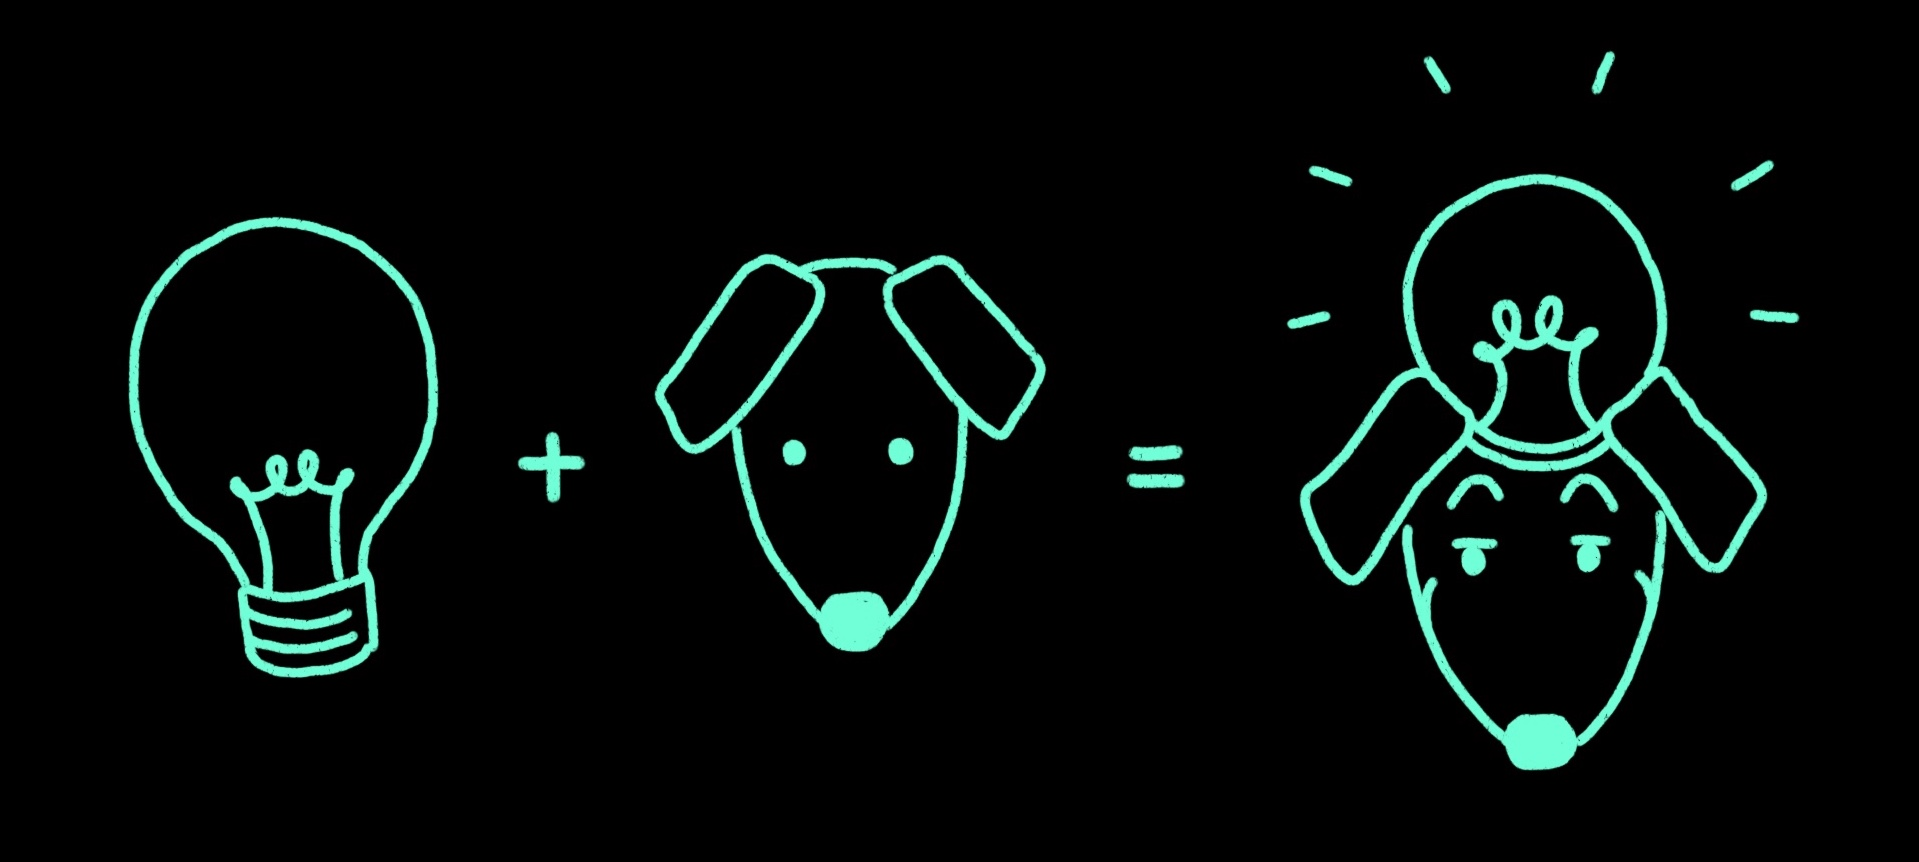 A hand-drawn light bulb added to a dog, which together become an idea dog